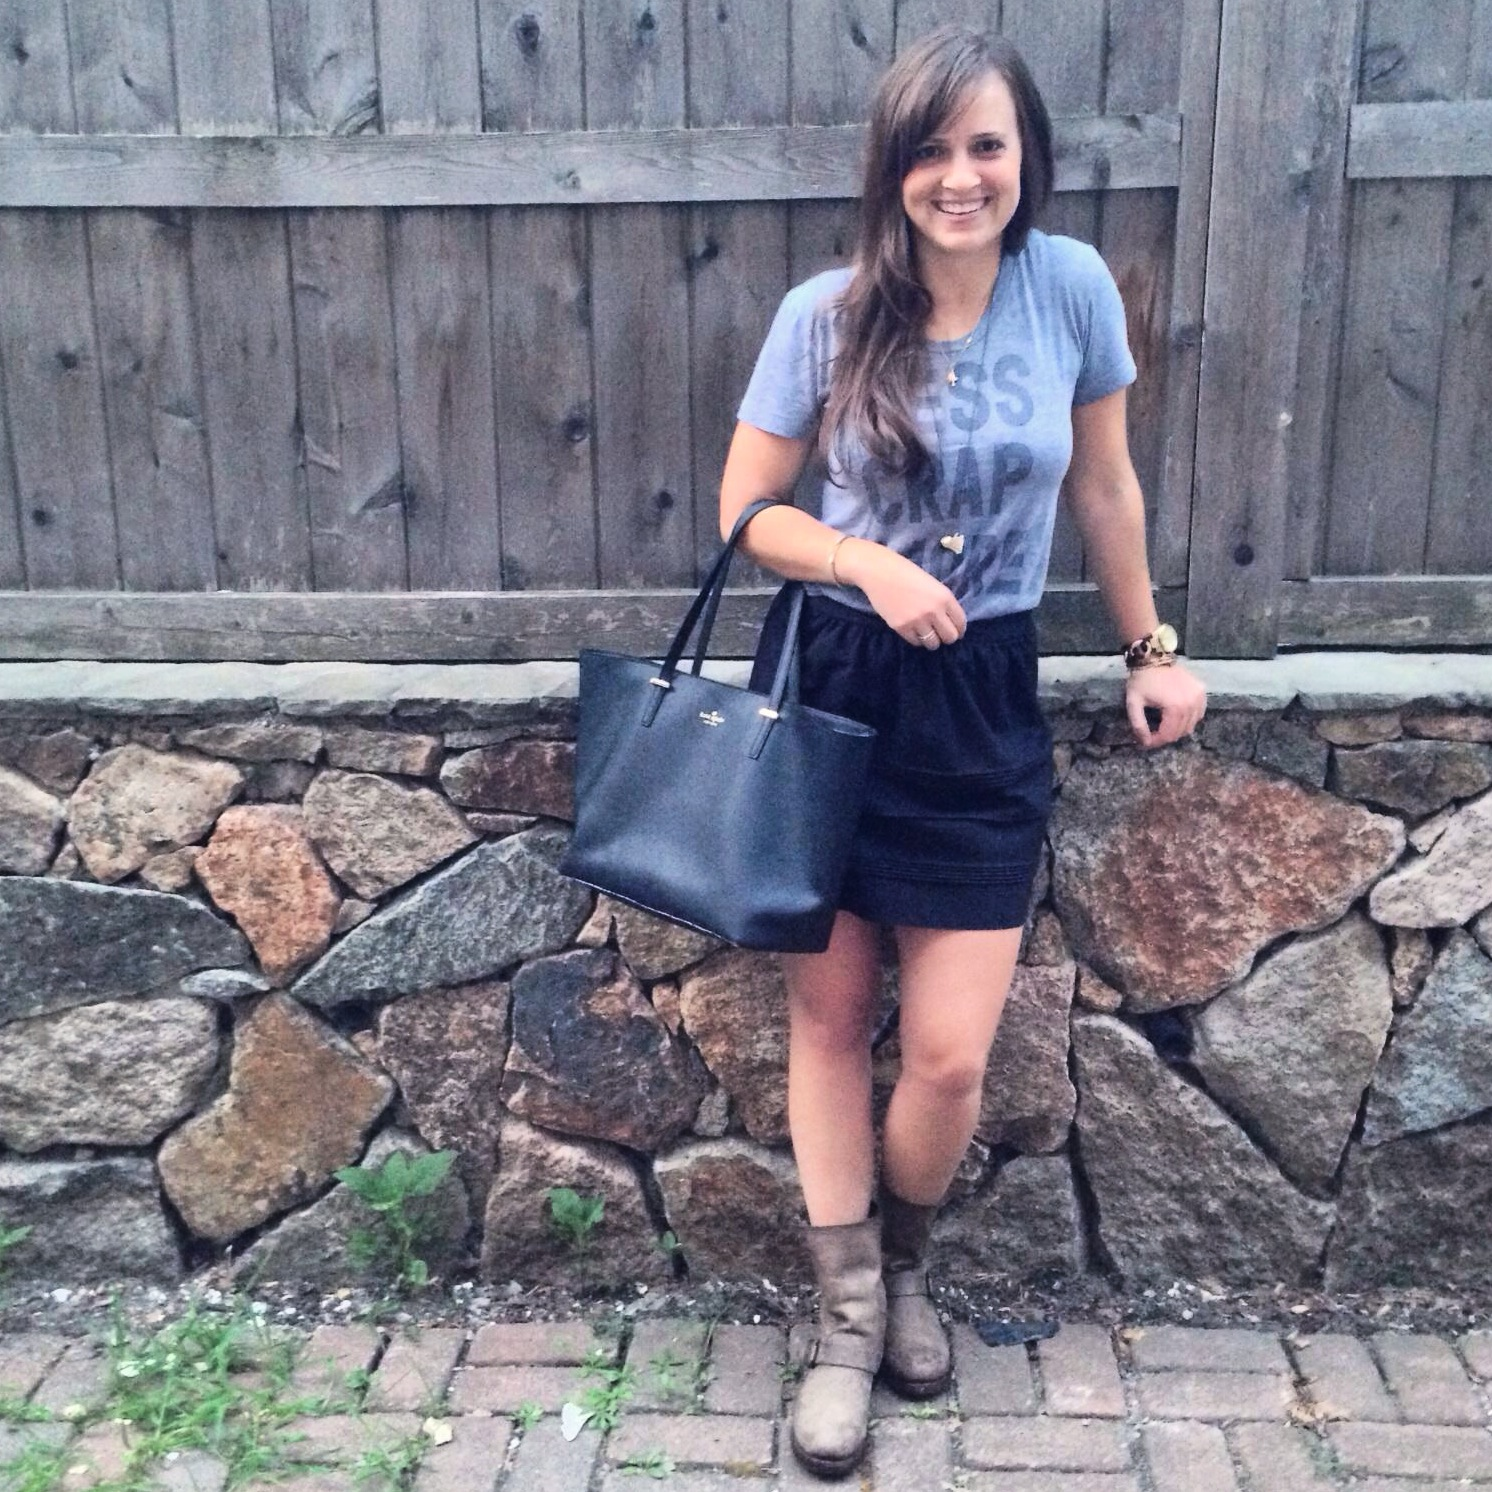 Day 3: Madewell skirt, Frye boots, Michael Kors watch, Kate Spade bag